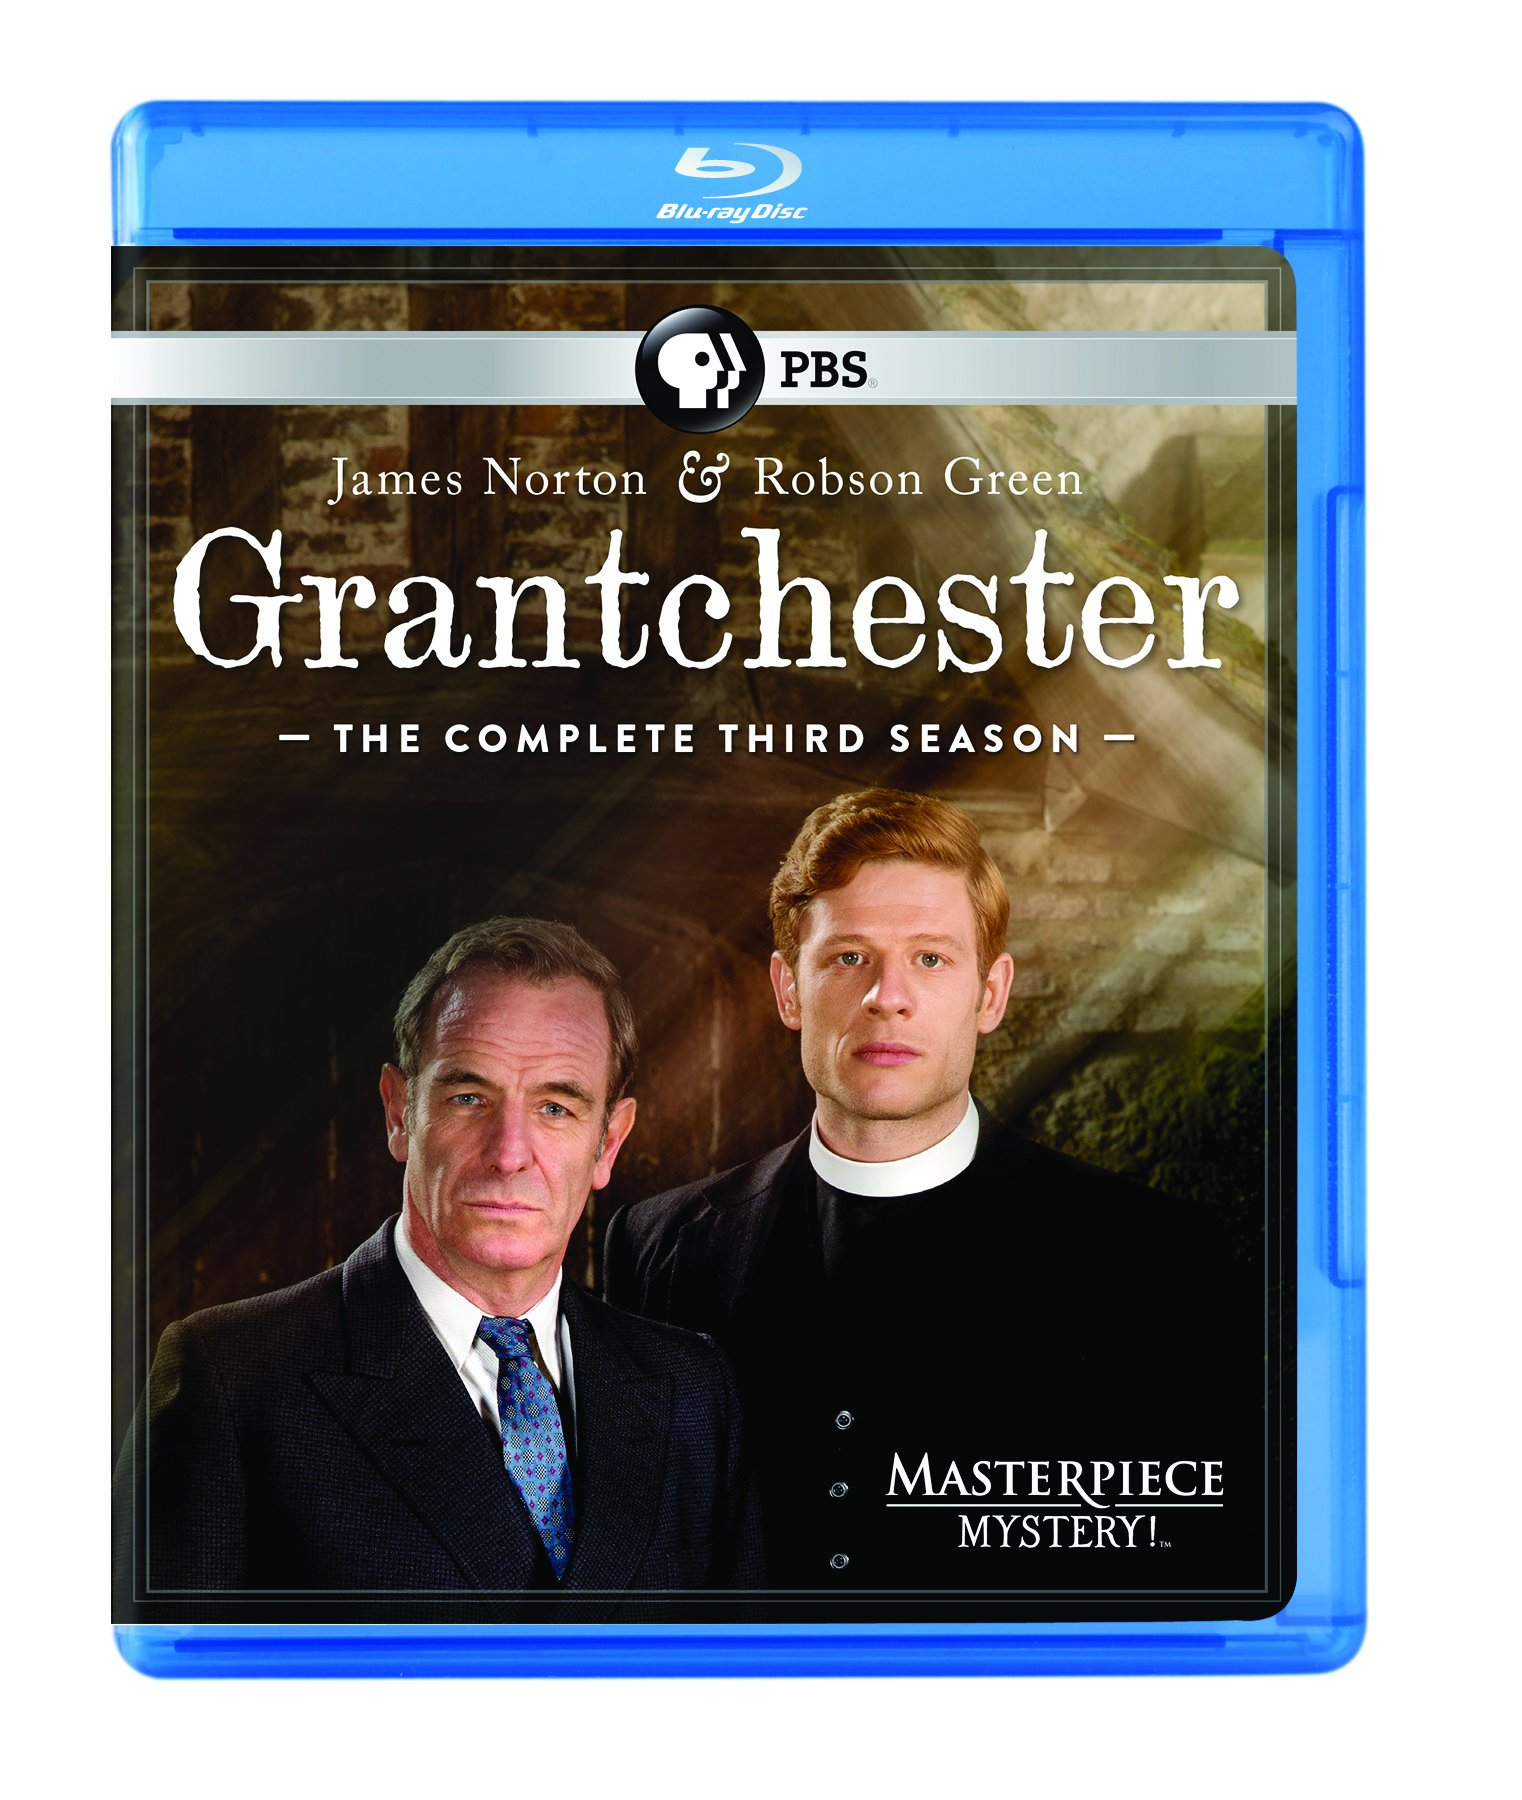 Blu-ray : Grantchester: The Complete Third Season (Masterpiece Mystery!) (3 Disc)